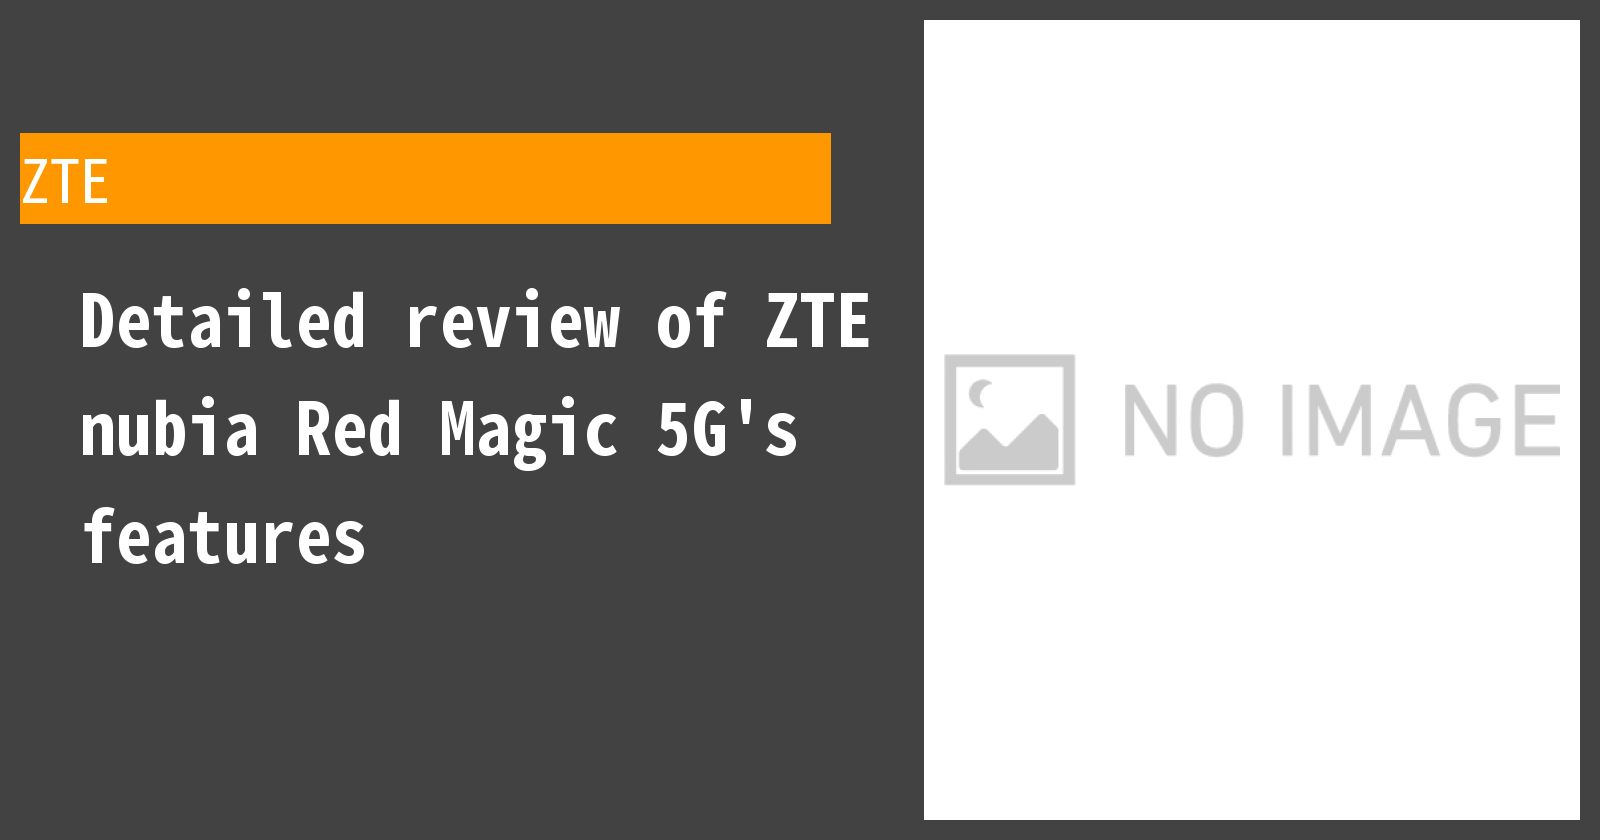 Detailed review of ZTE nubia Red Magic 5G's features